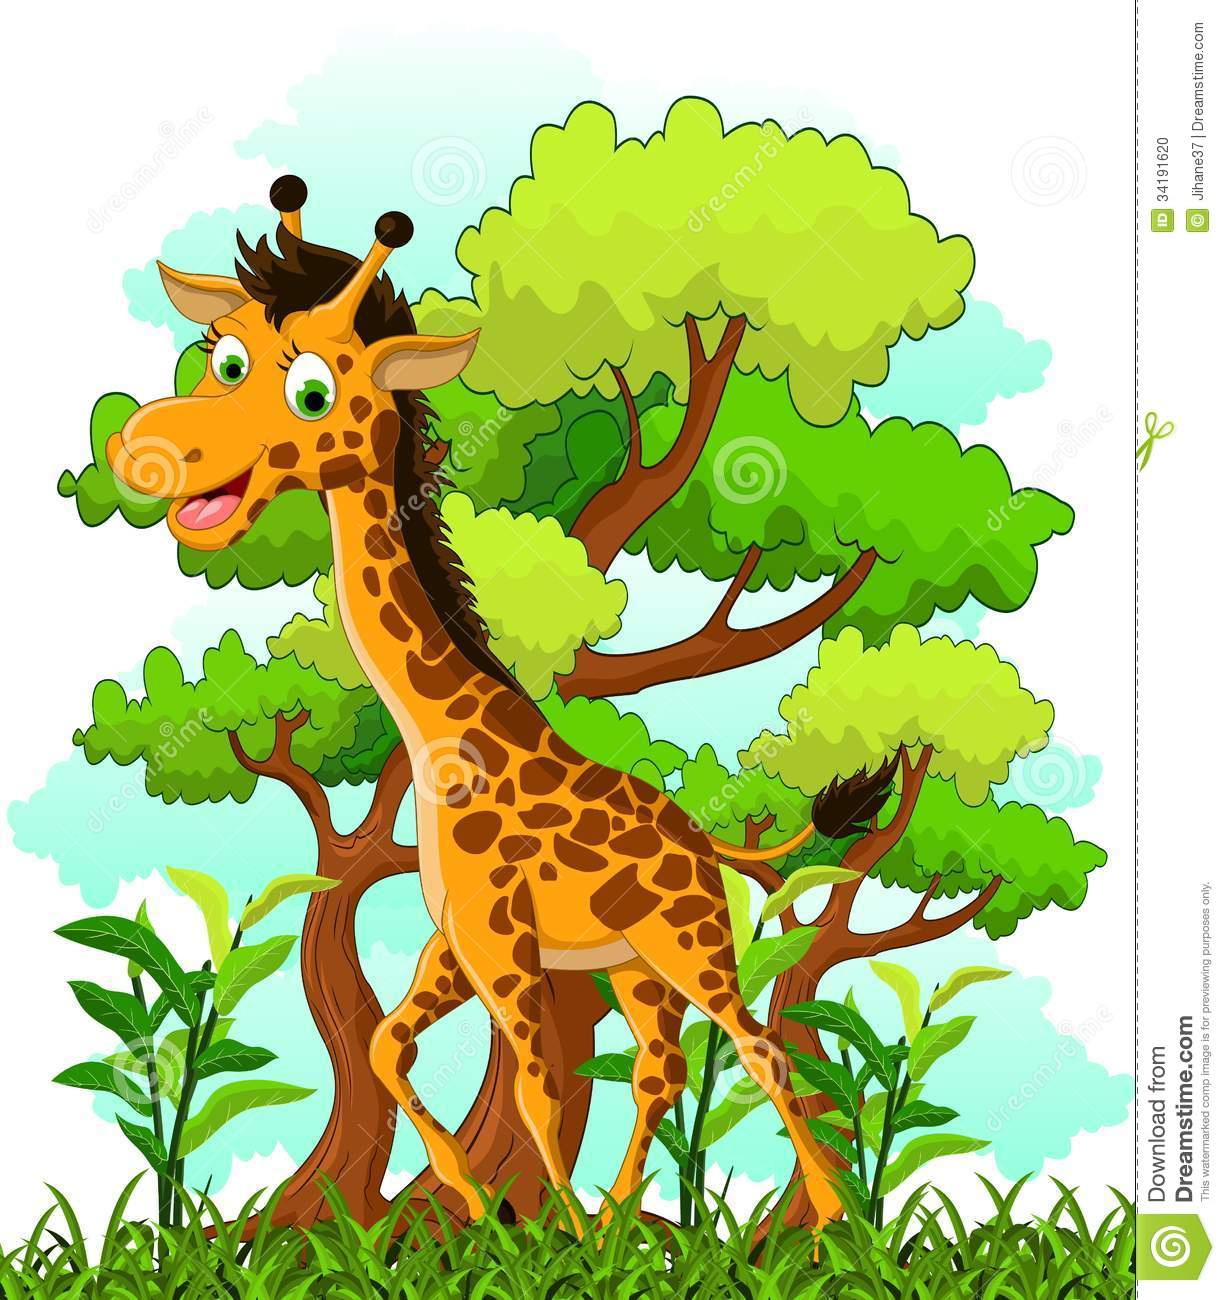 Giraffe Cartoon On Forest Background Stock Photo - Image: 34191620